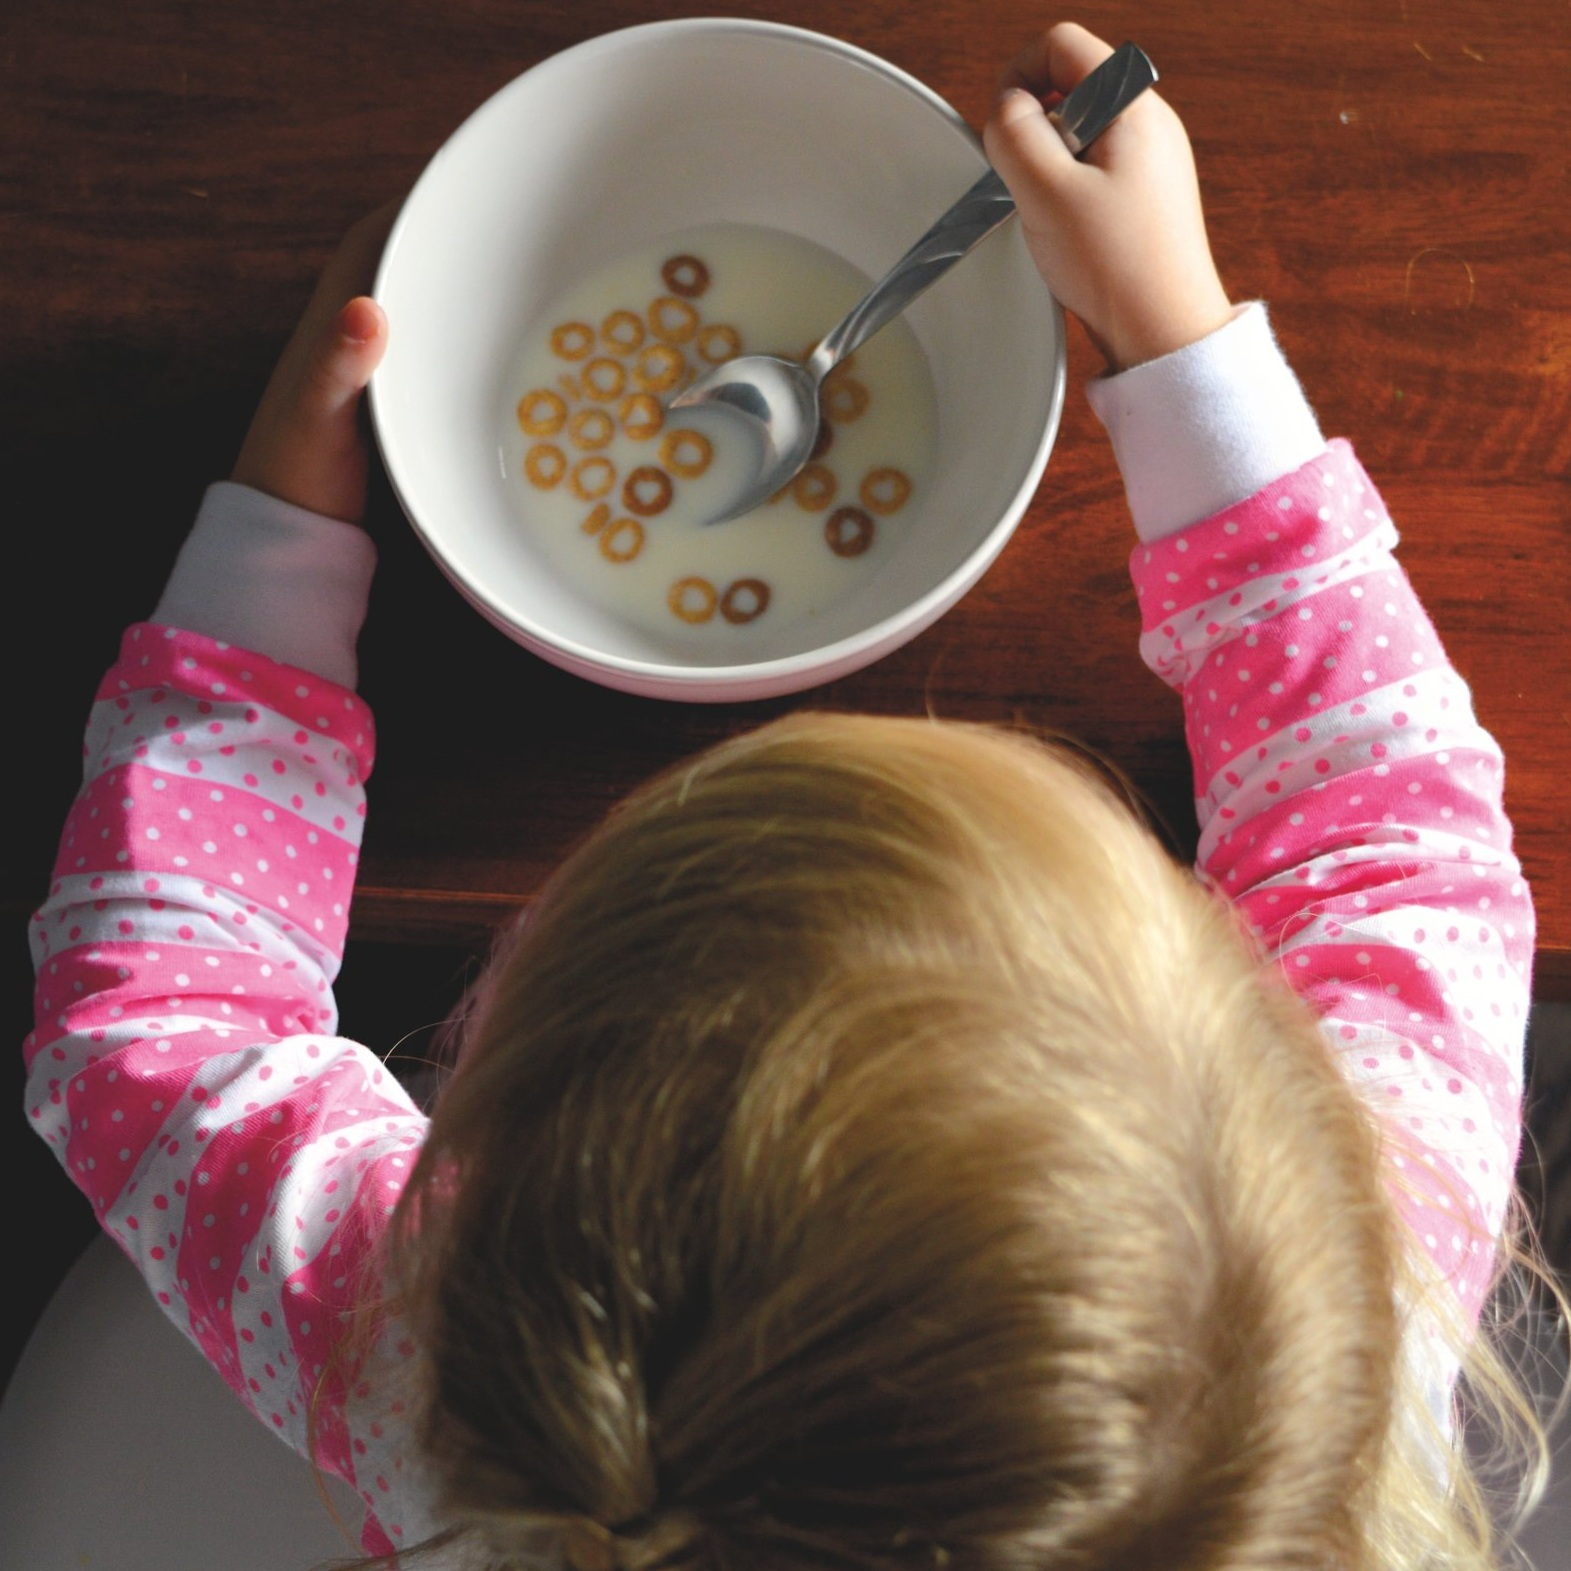 A little girl in pink and white pajamas looks at her nearly empty cereal bowl.